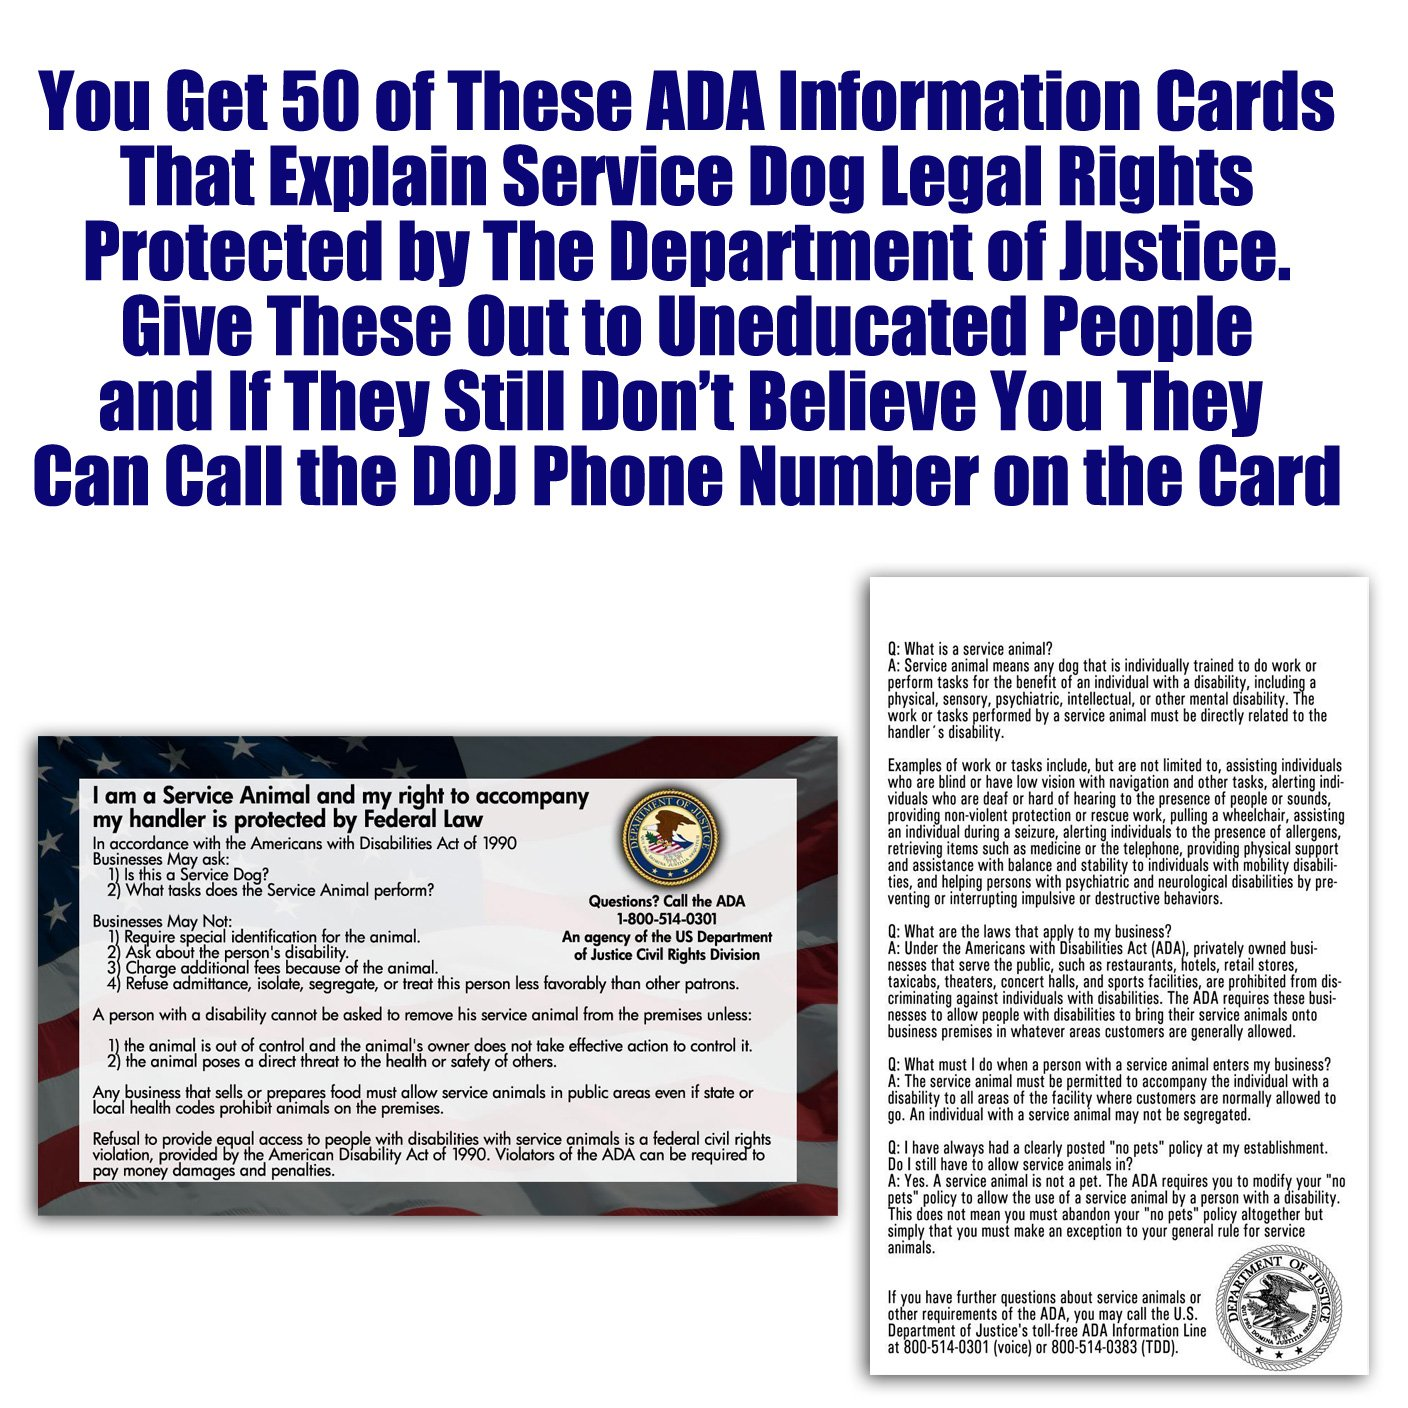 Amazon service dog cards 50 ada service dog information amazon service dog cards 50 ada service dog information cards state your rights service dog ada info cards state your legal rights give them to 1betcityfo Gallery